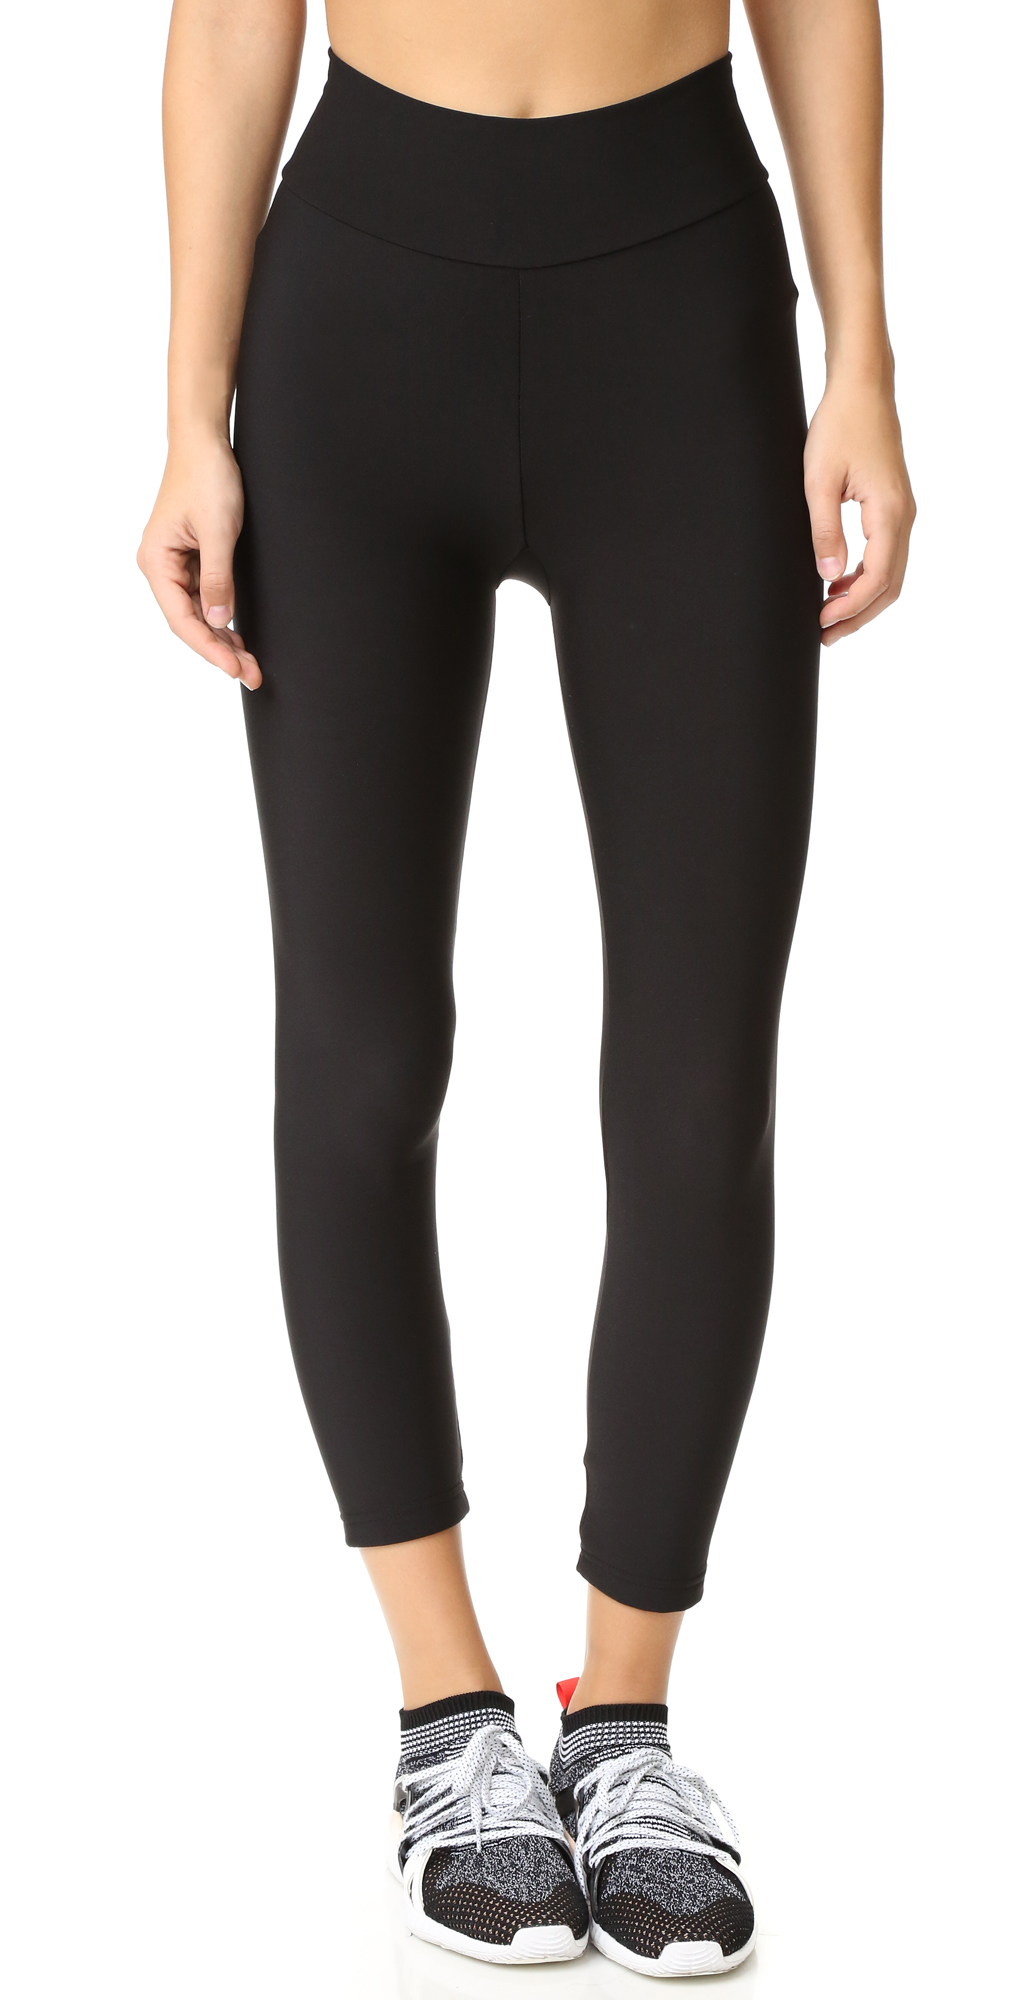 Fleece Lined Cropped Athletic Leggings Plush